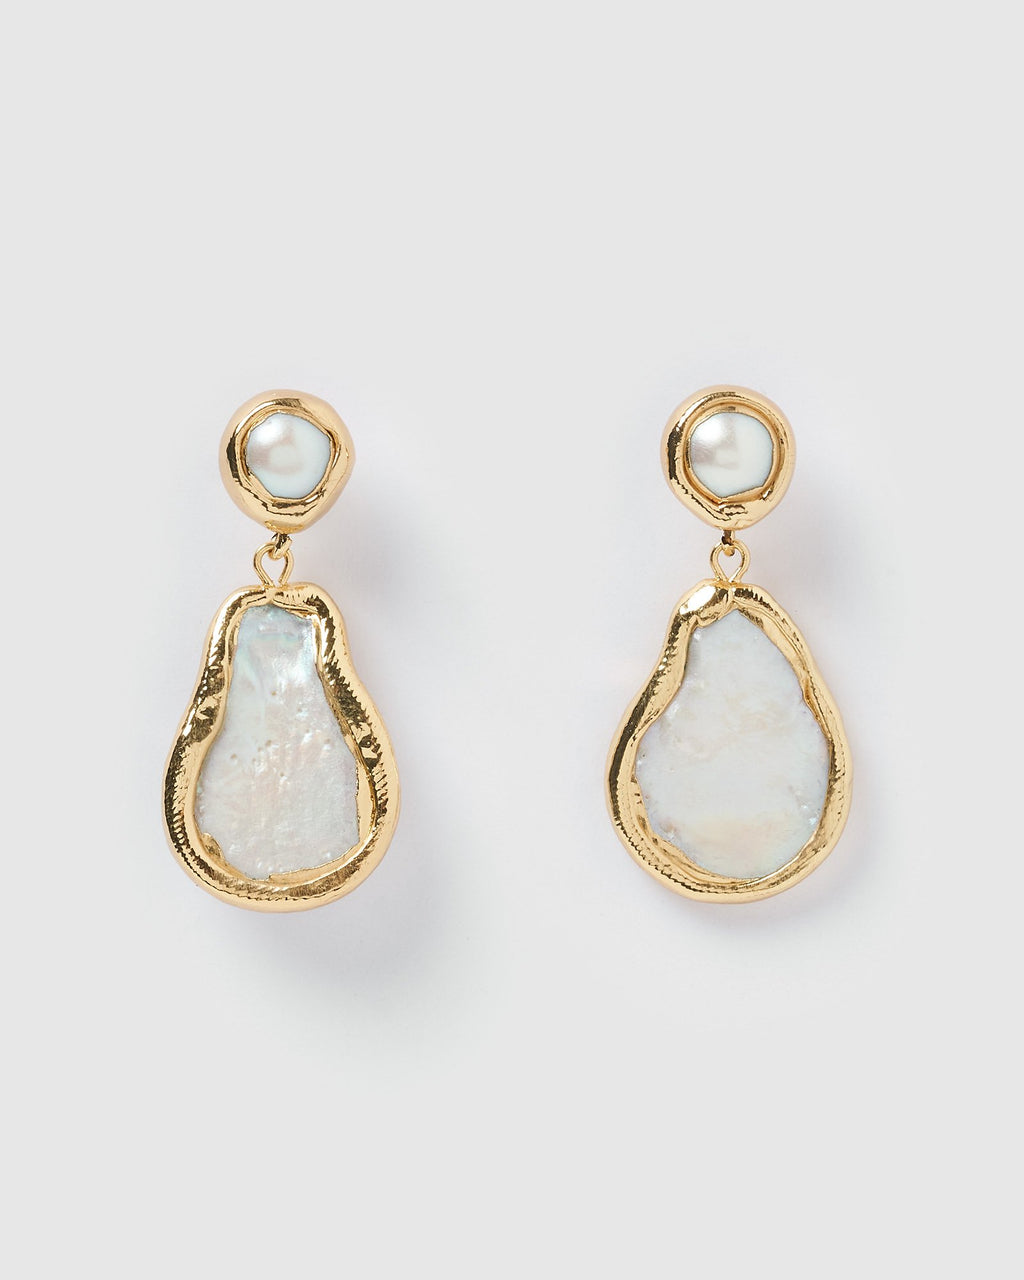 Miz Casa & Co Amberly Earrings Gold Iridescent Pearl